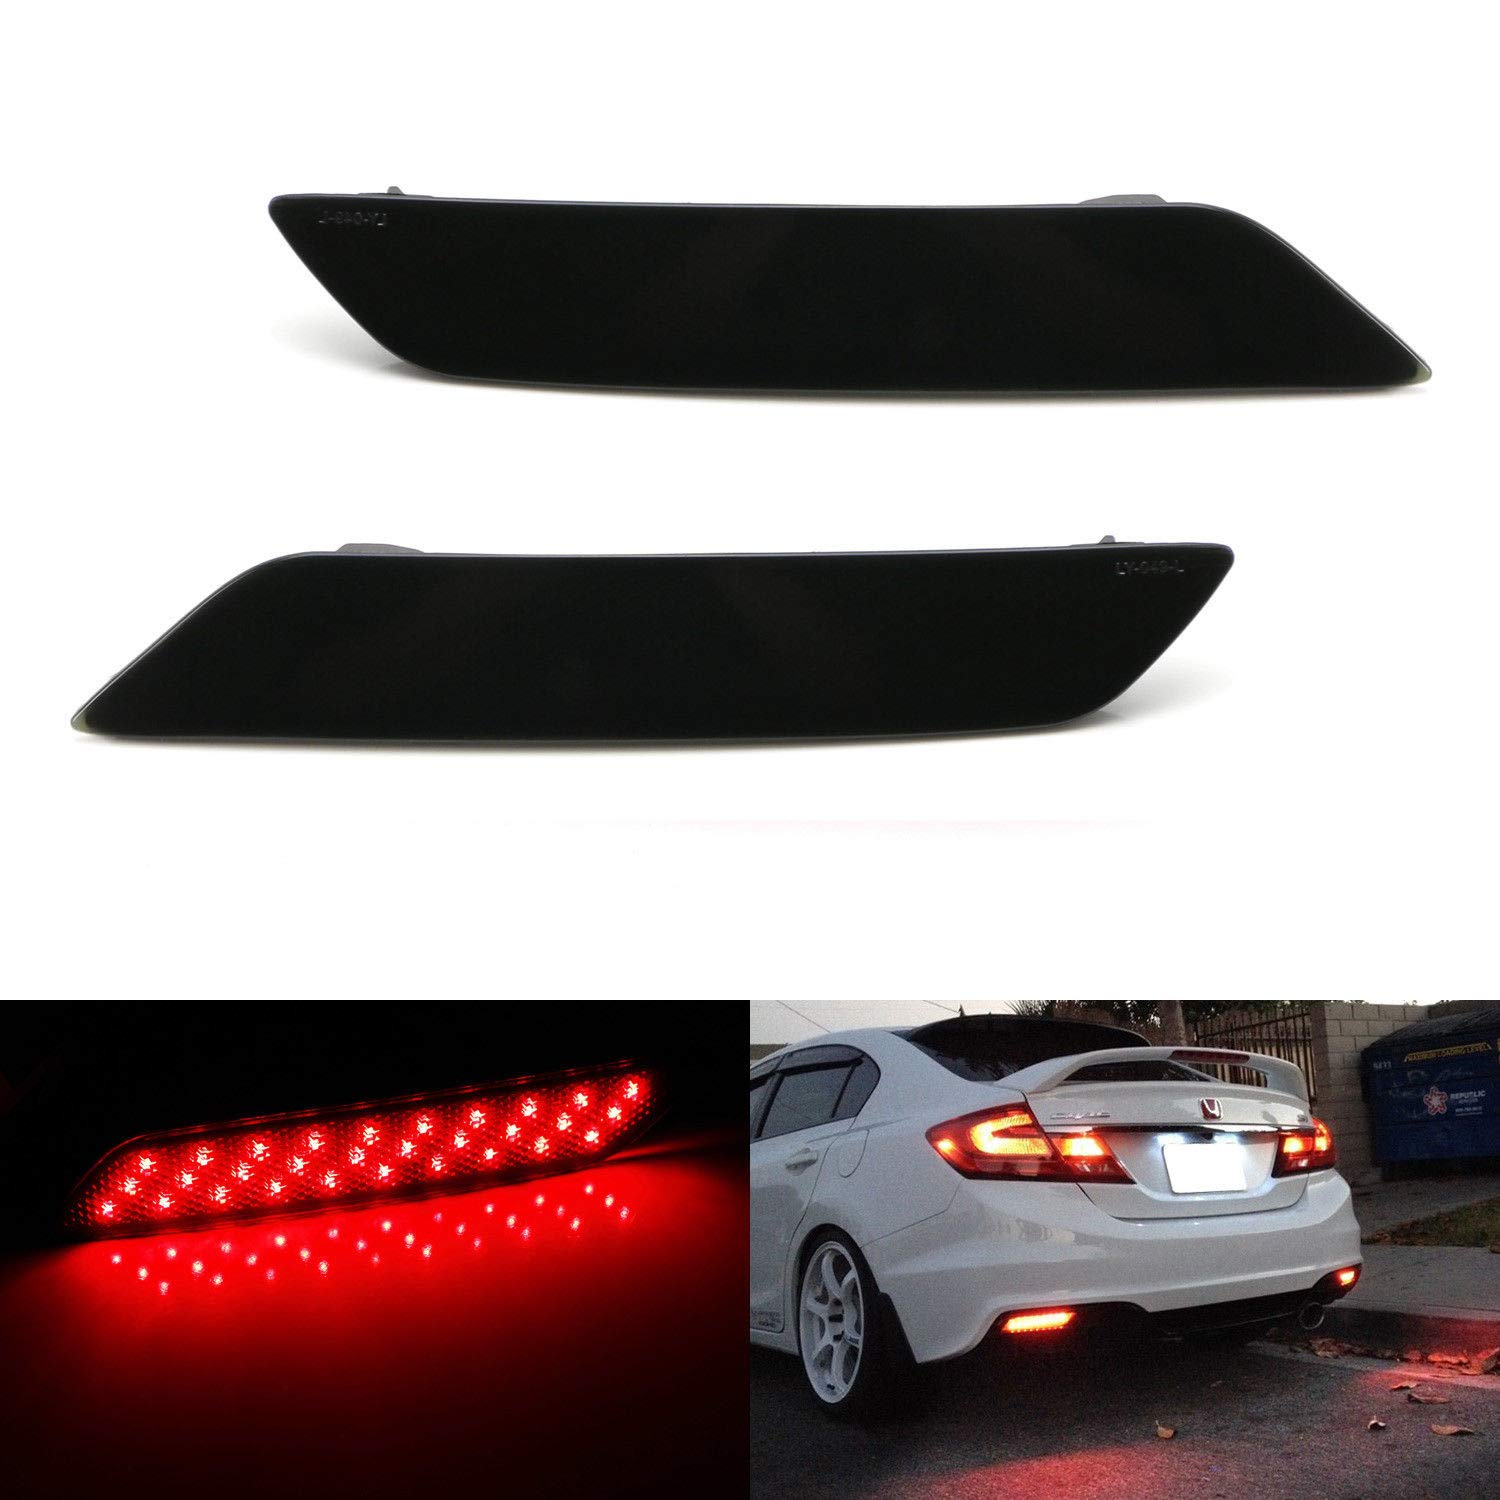 iJDMTOY Smoked Lens 60-SMD LED Bumper Reflector Lights For 13-15 Honda Civic Sedan, Function as Tail, Brake & Rear Fog Lamps